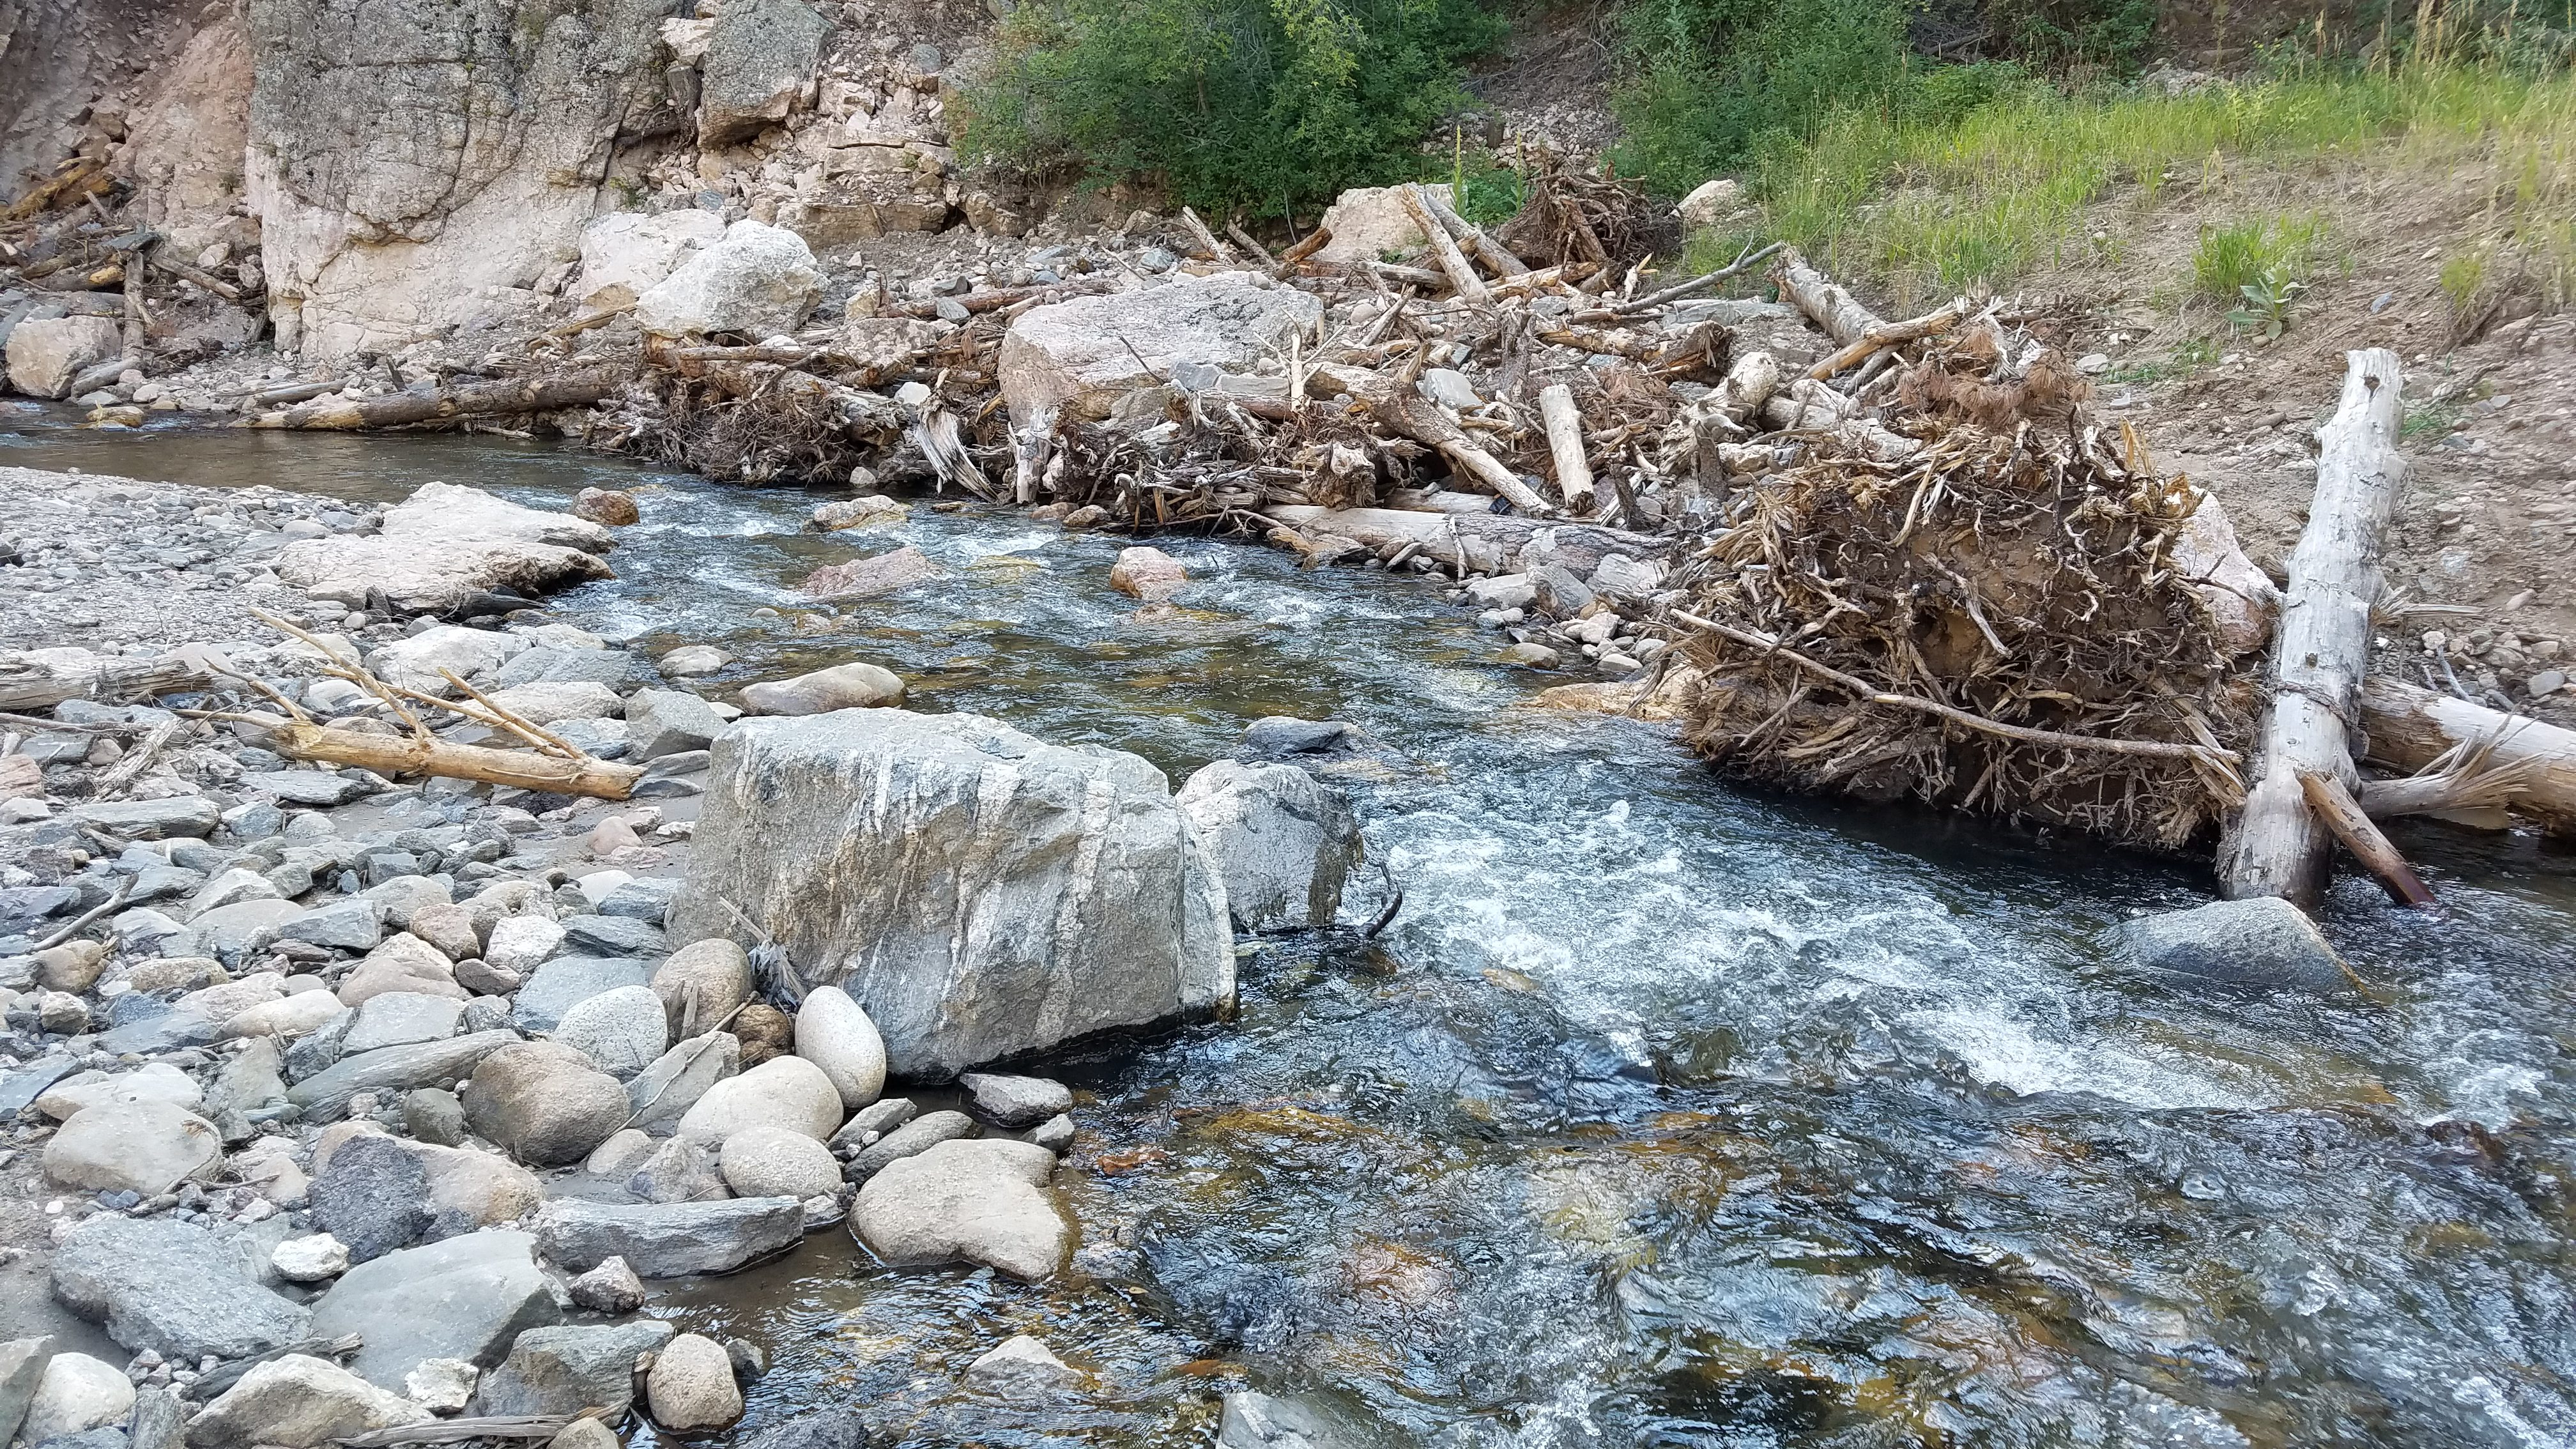 Large woody debris helps stabilize banks and creates habitat